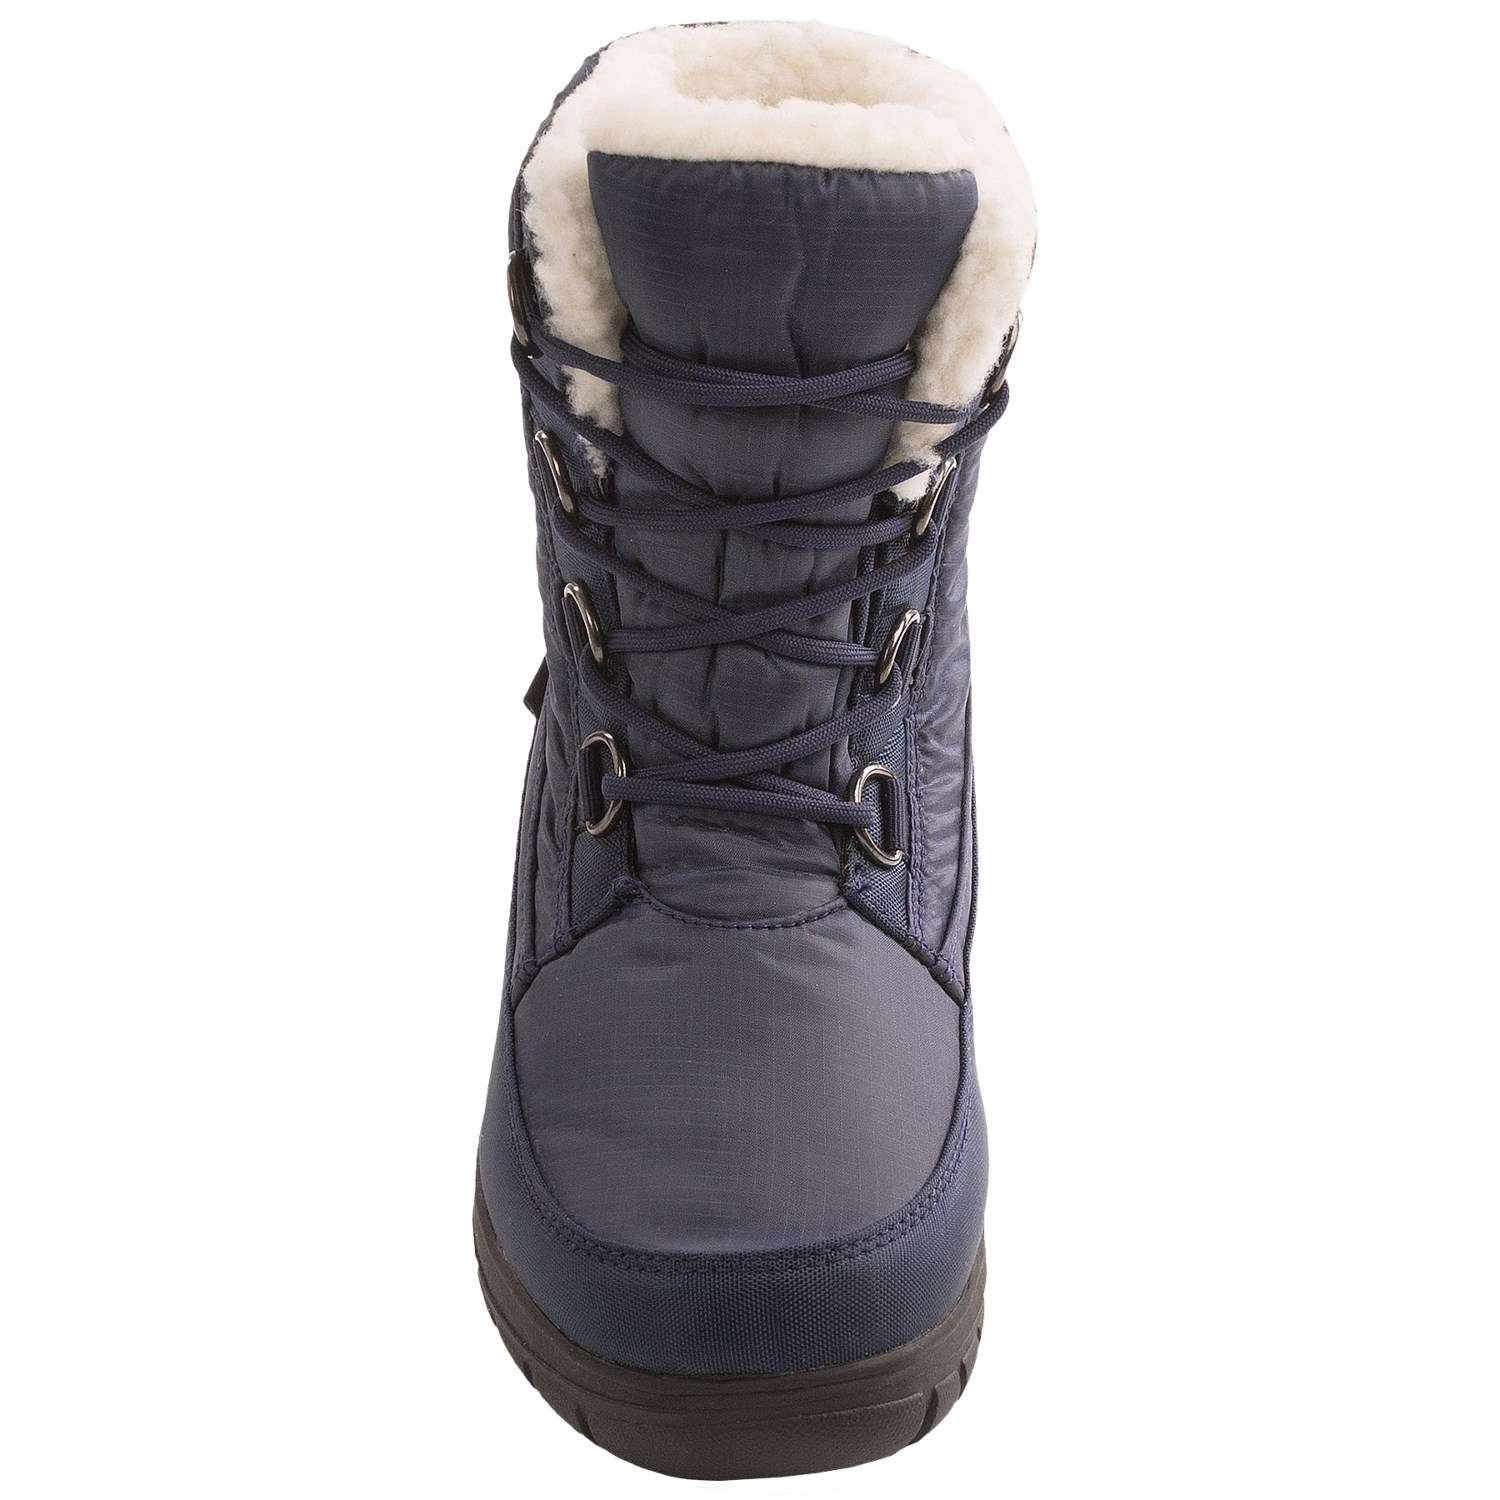 Kamik Baltimore Snow Boots (For Women) - Save 87%